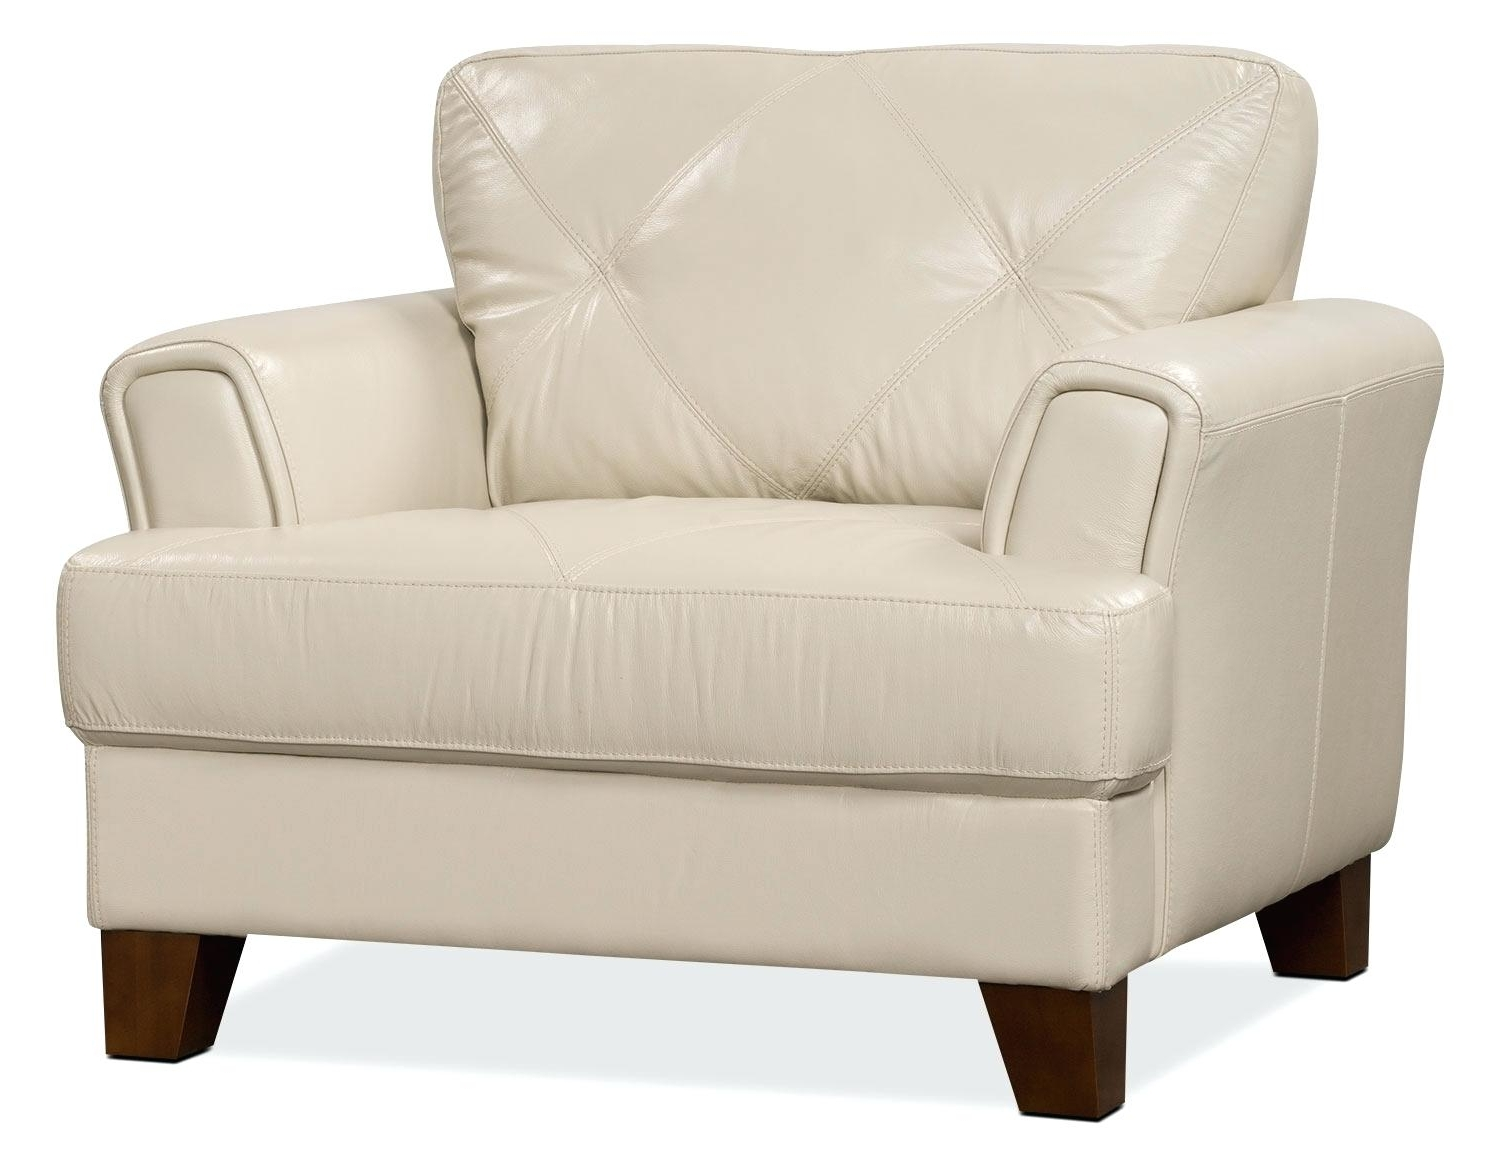 Preferred Cindy Crawford Leather Furniture Vita Genuine Chair Smoke The Throughout Cindy Crawford Sofas (View 19 of 20)